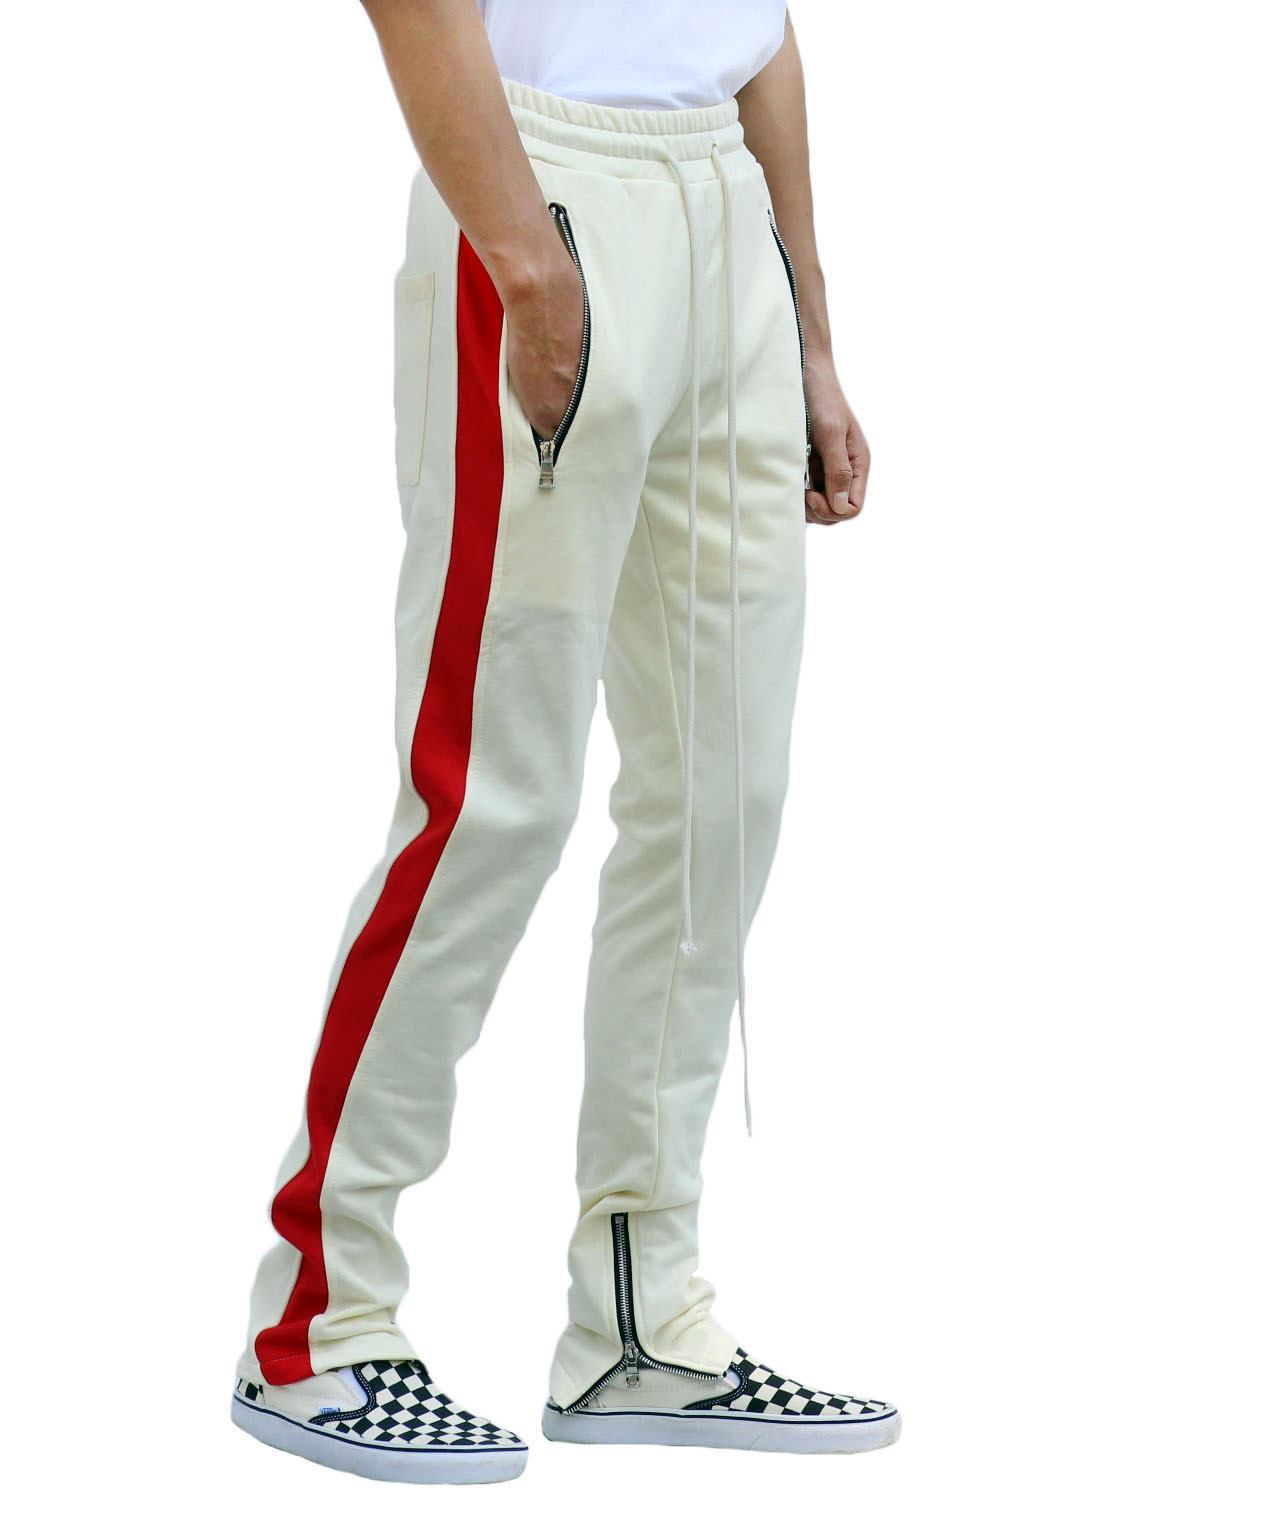 Beige Track Pants - Red Stripe